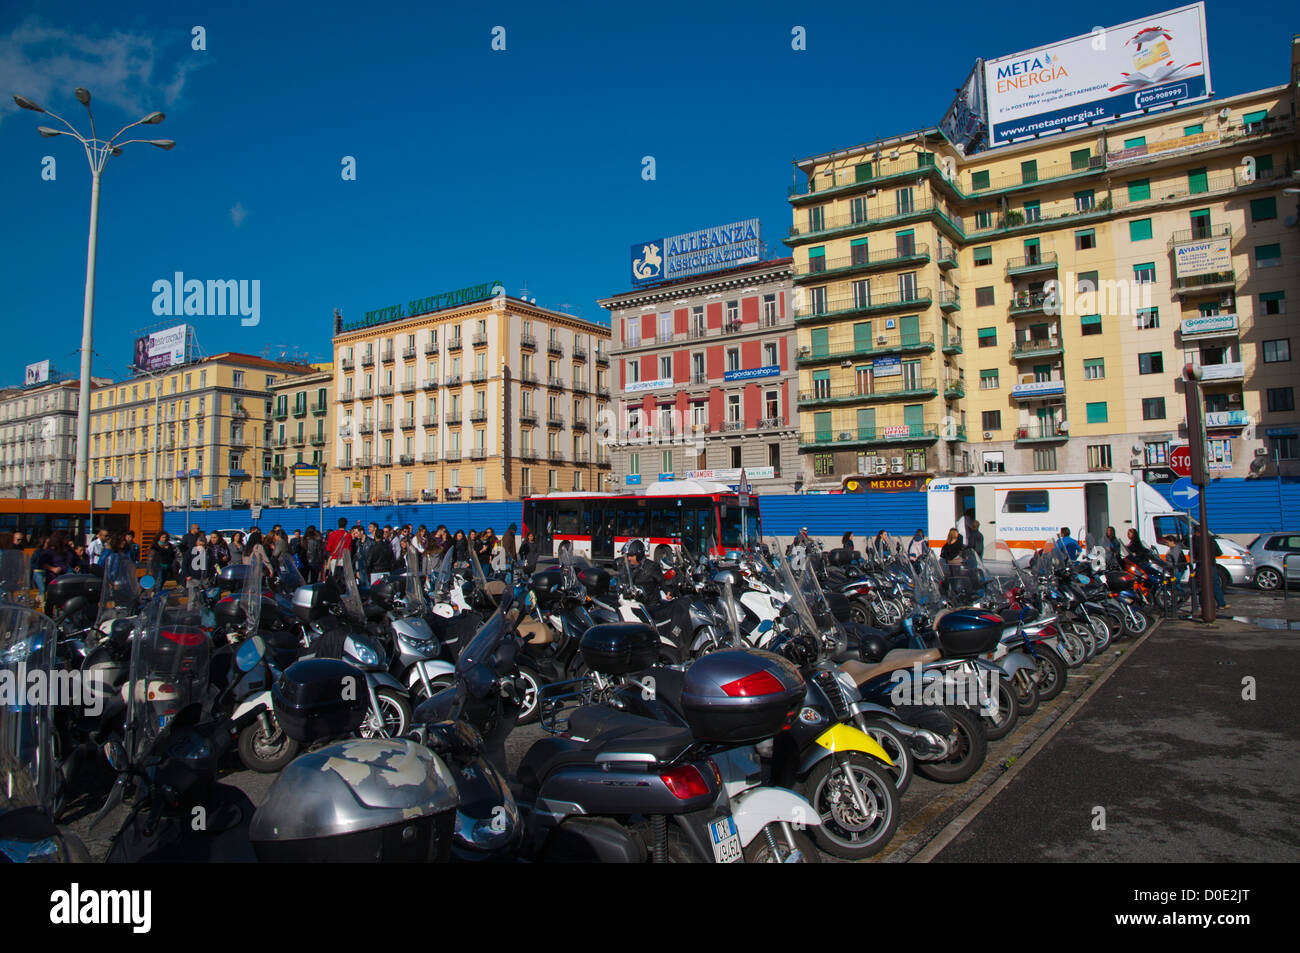 Scooters parked in front of central railway station Piazza Garibaldi square central Naples city  Italy - Stock Image